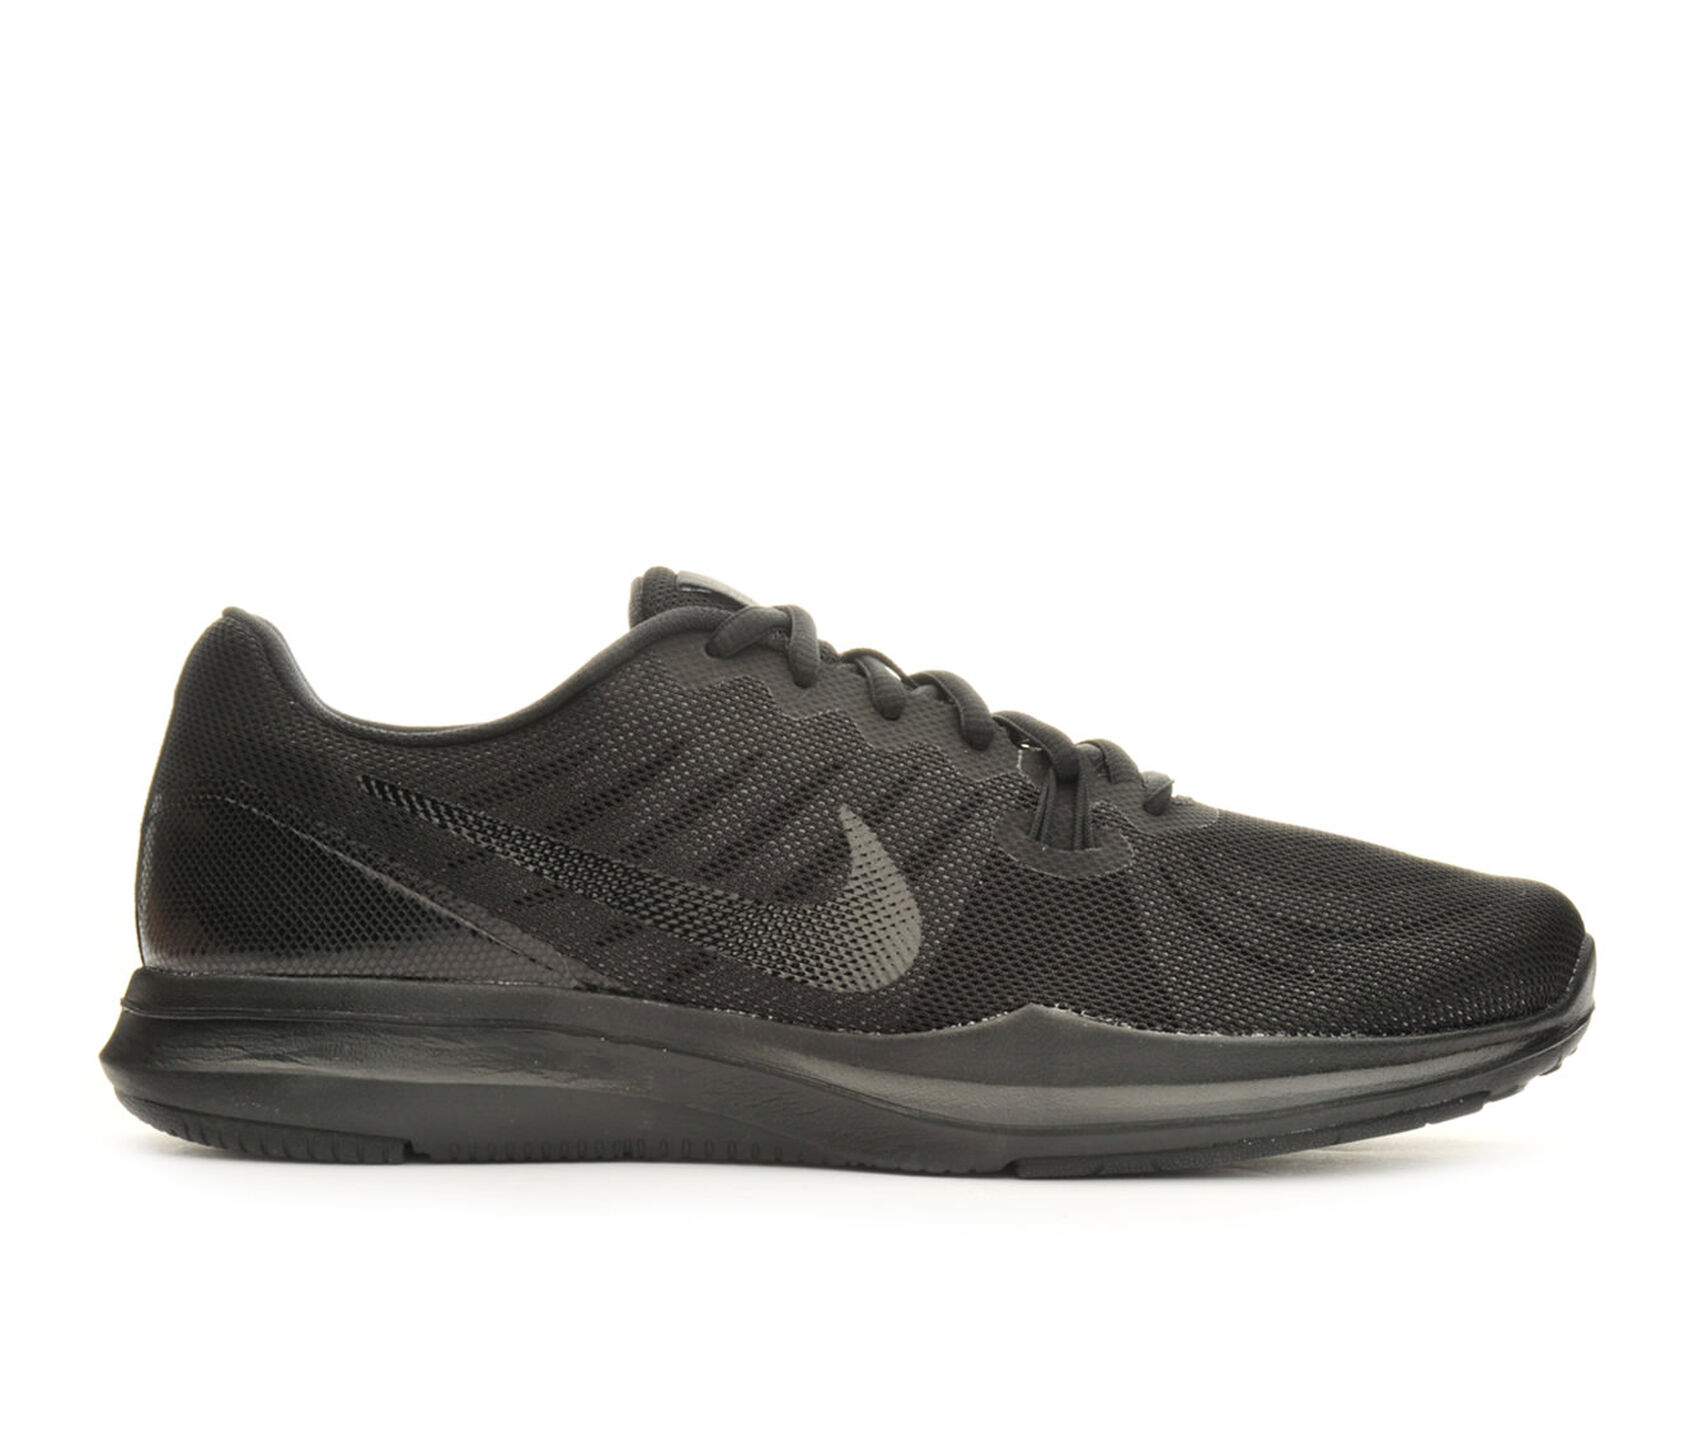 a5a754783278 Women s Nike In-Season TR 7 Training Shoes